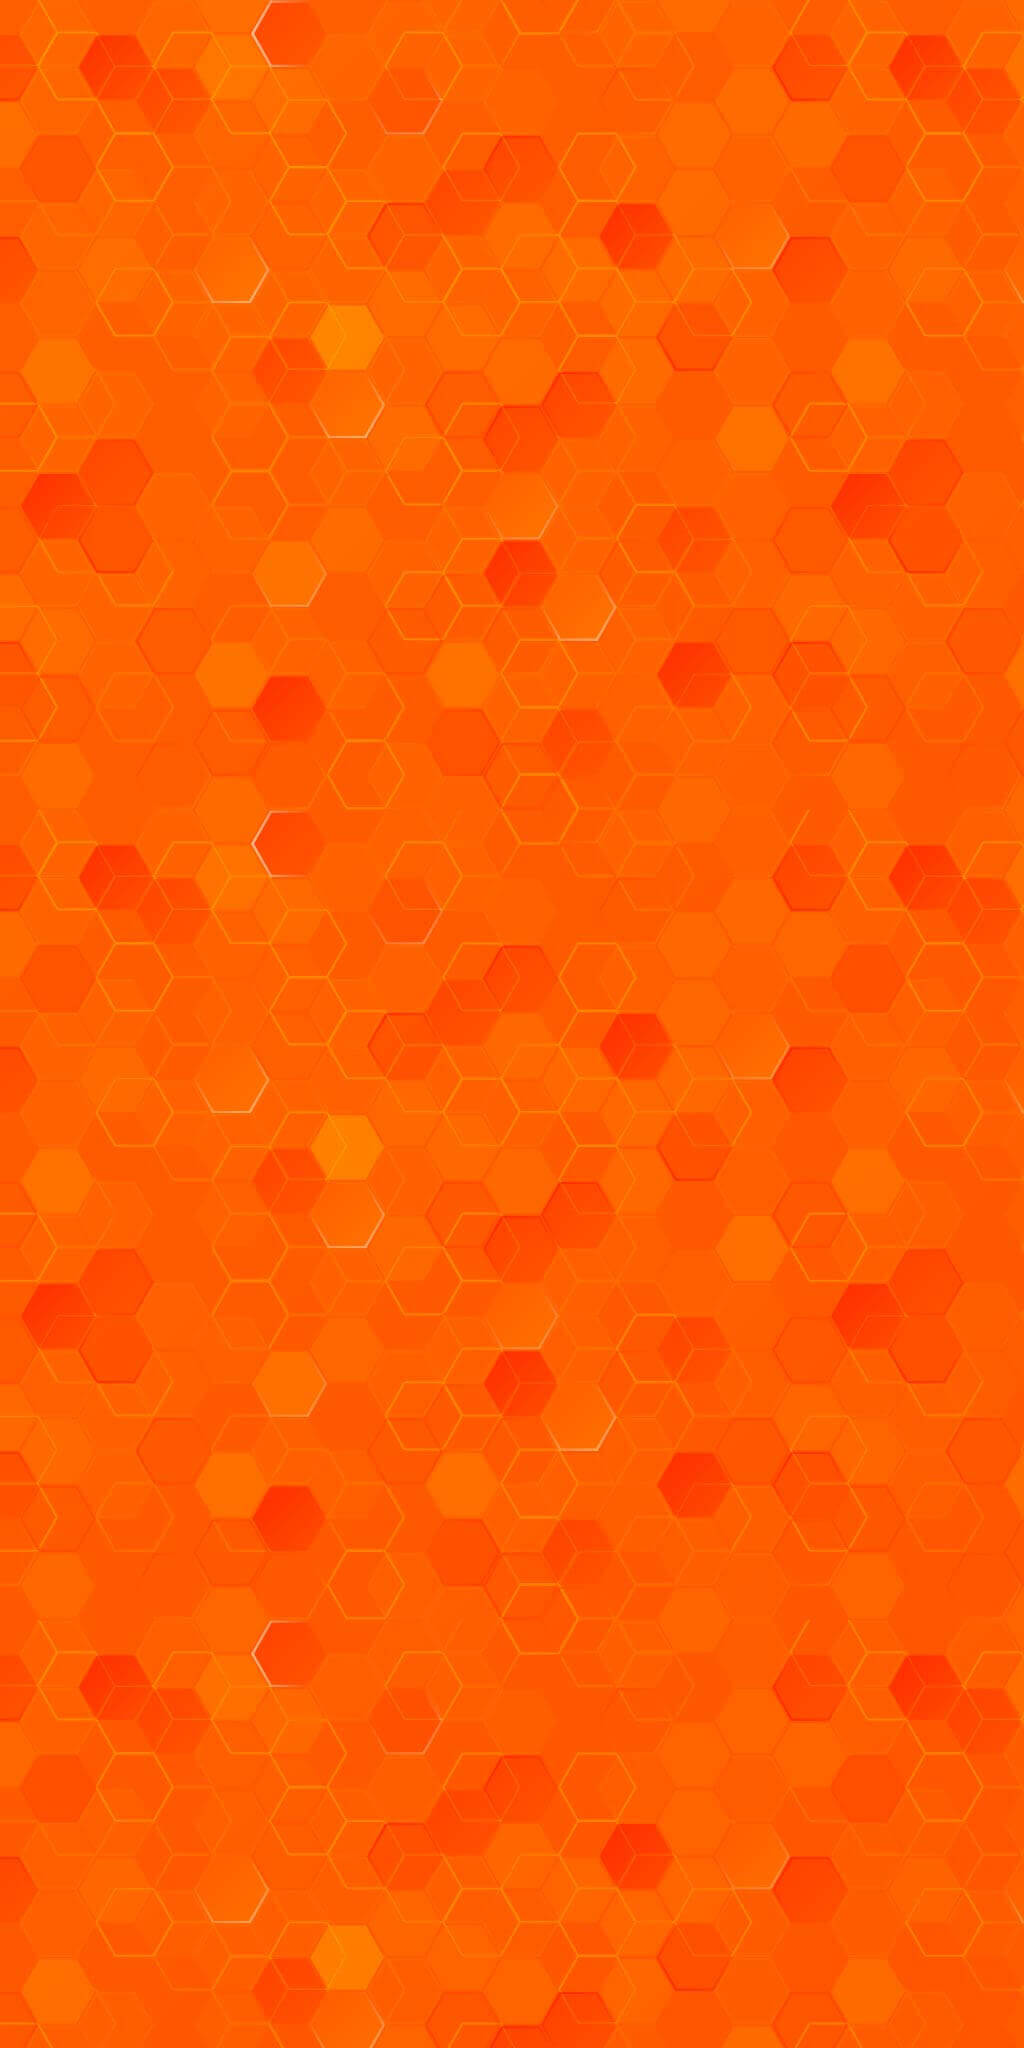 A red-orange hexagon-patterned background.